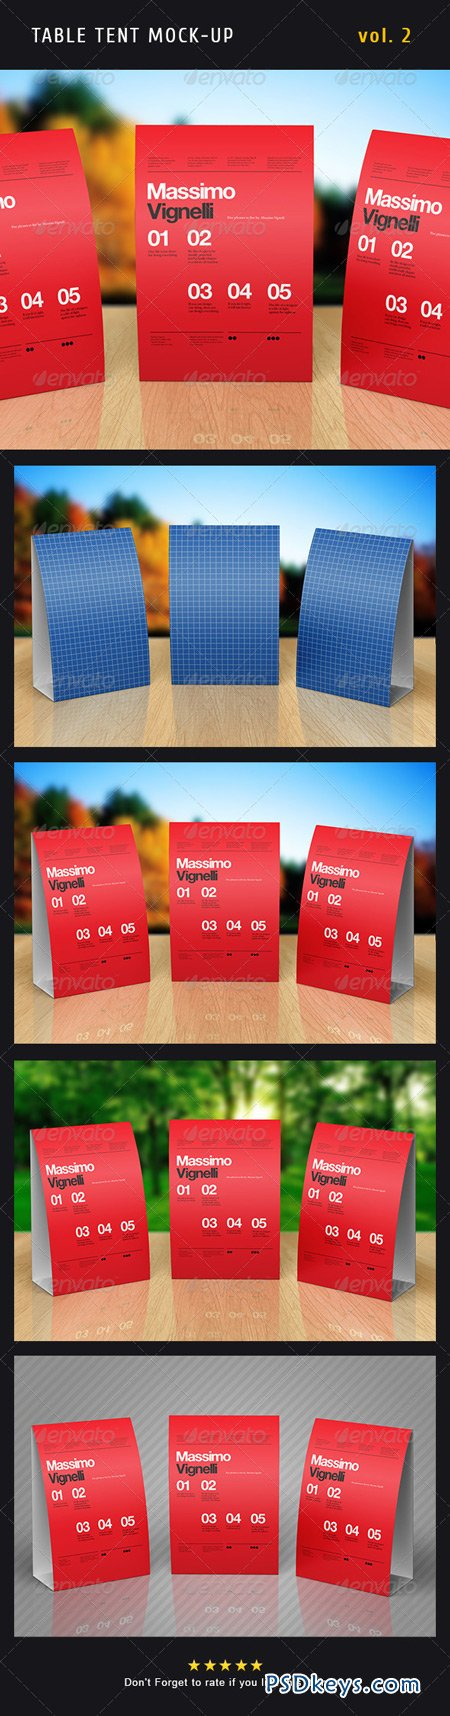 Paper Table Tent Mock-up Template Vol.2 5089197